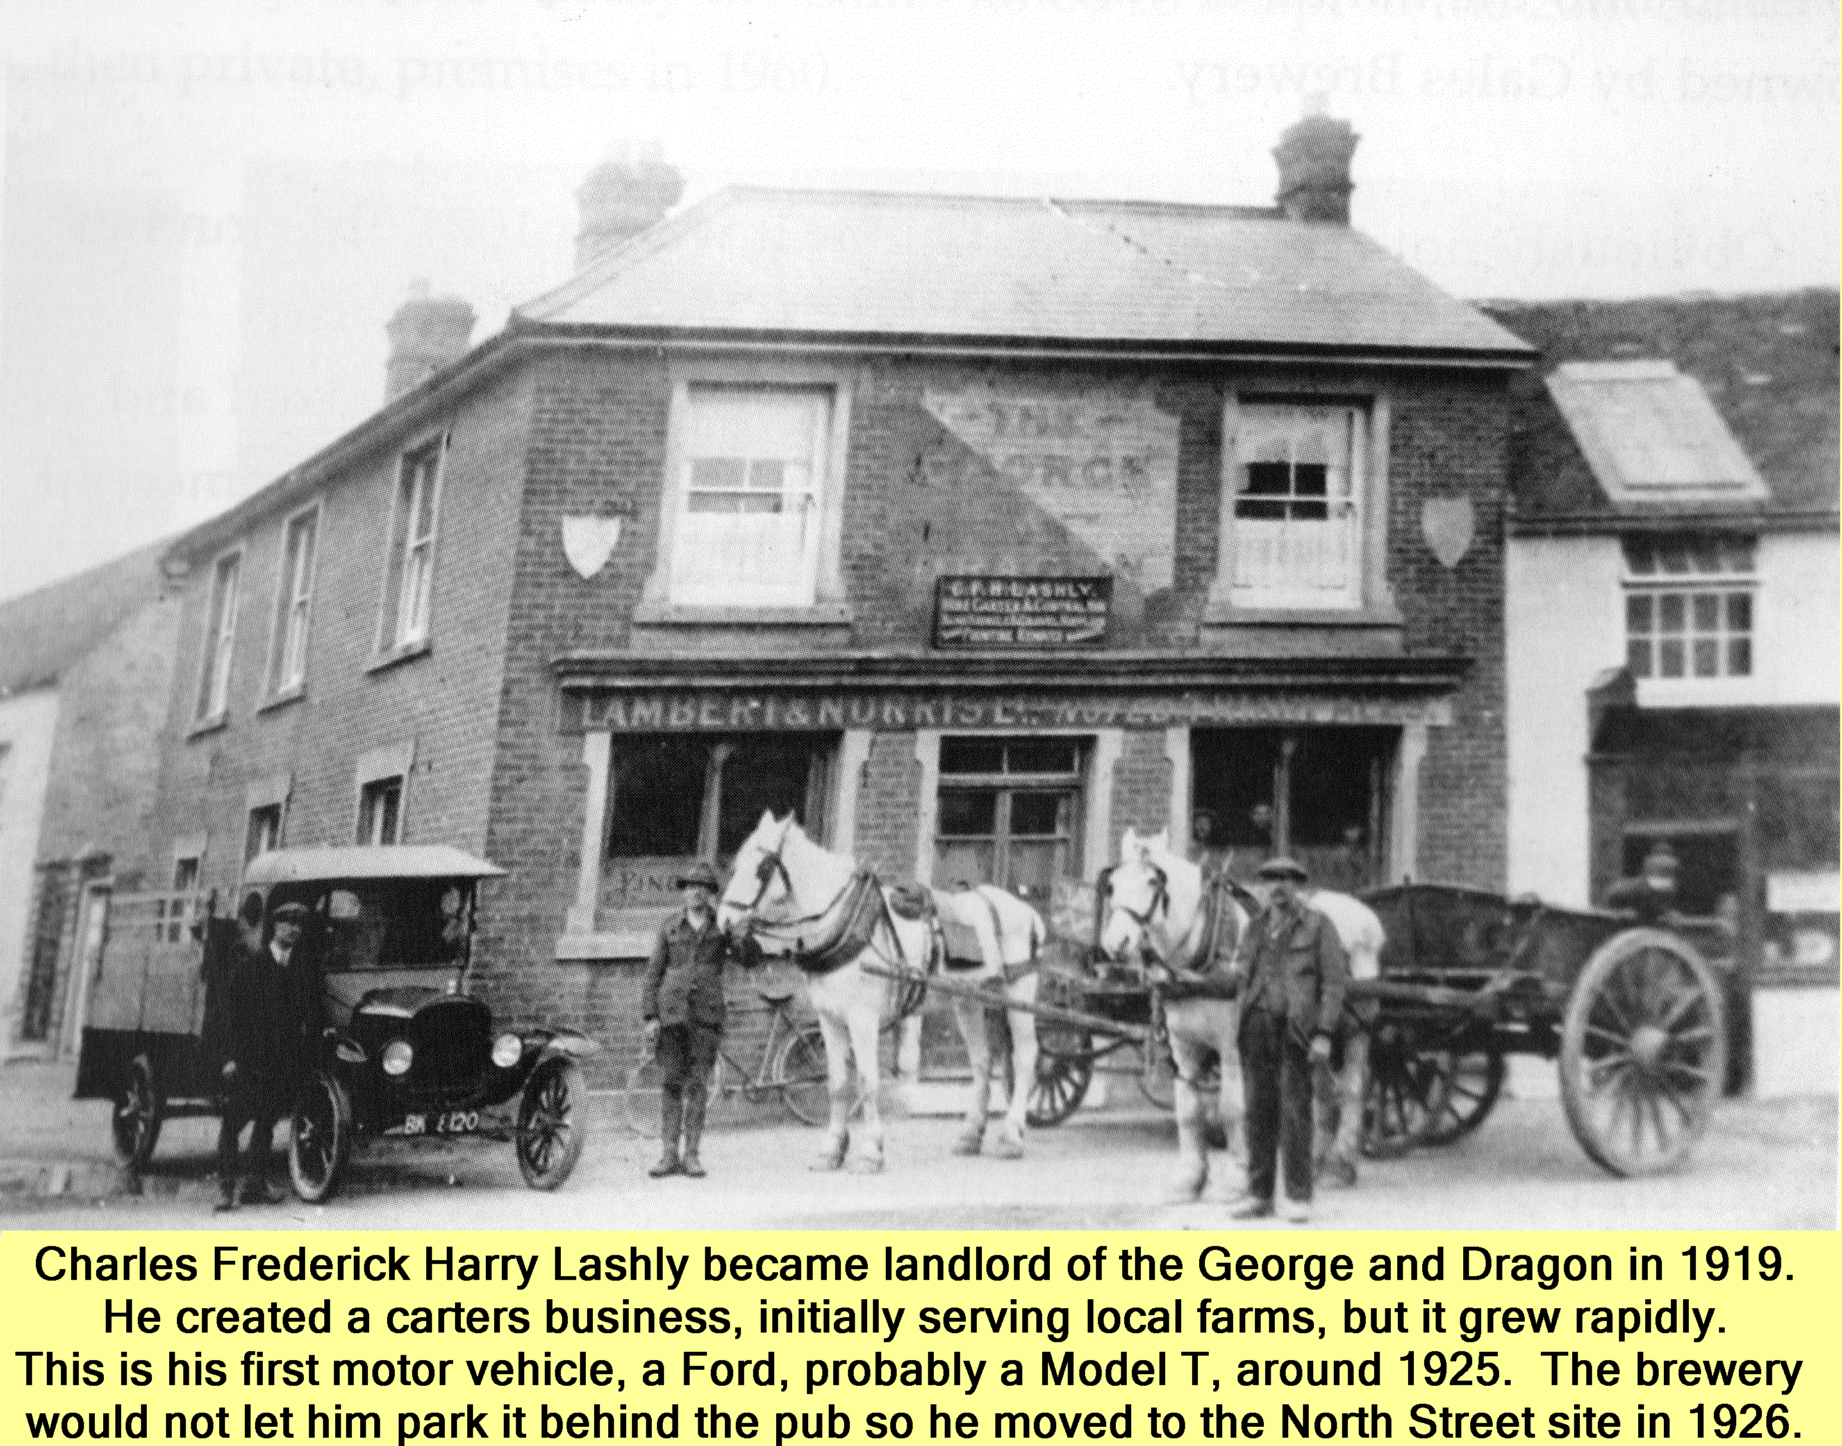 Westbourne history photo, George and Dragon, Lashly